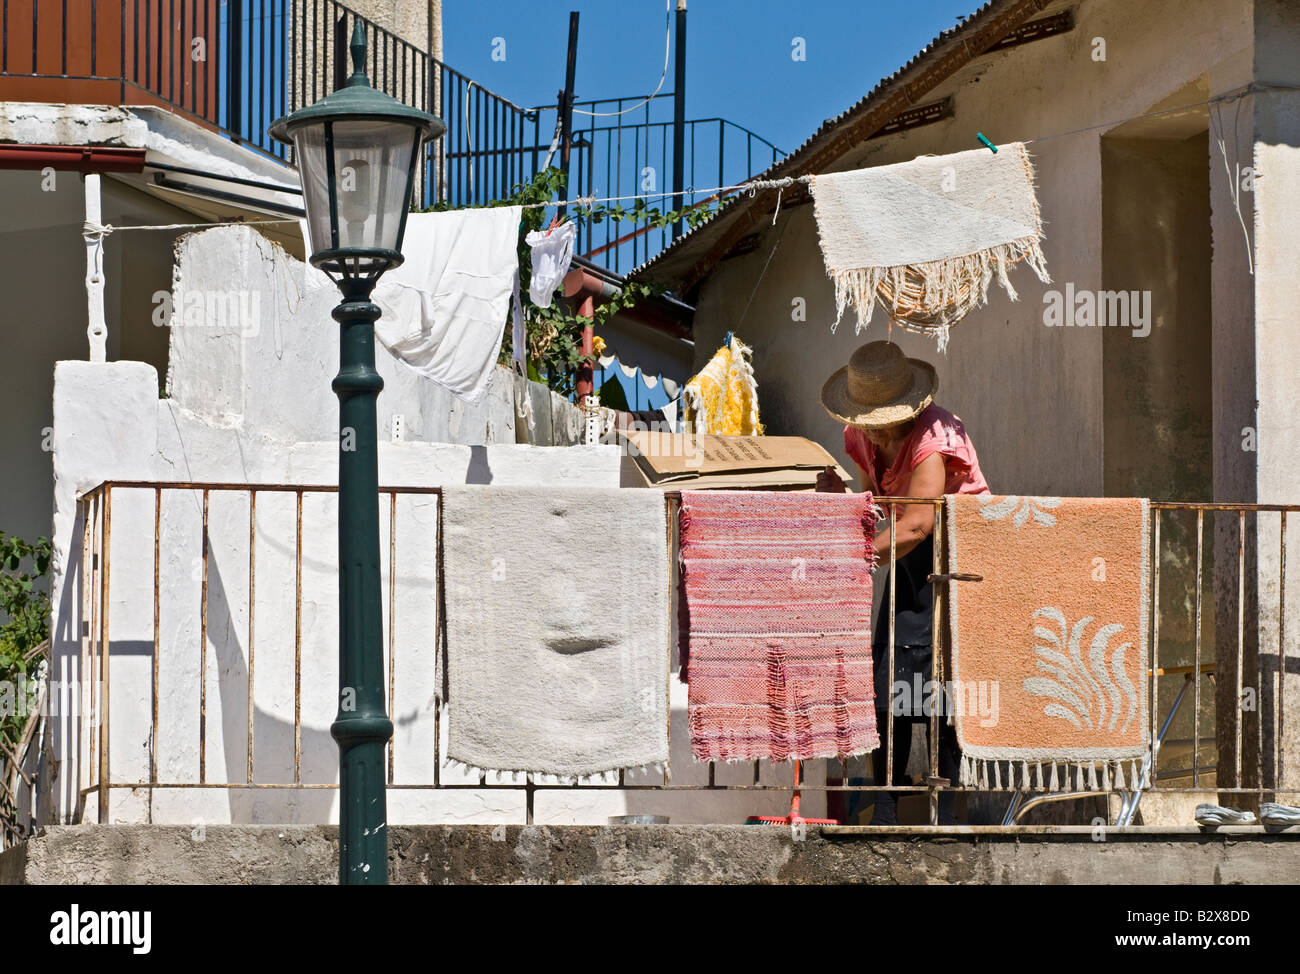 Spring cleaning in Sami eastern Cephallonia Greece - Stock Image